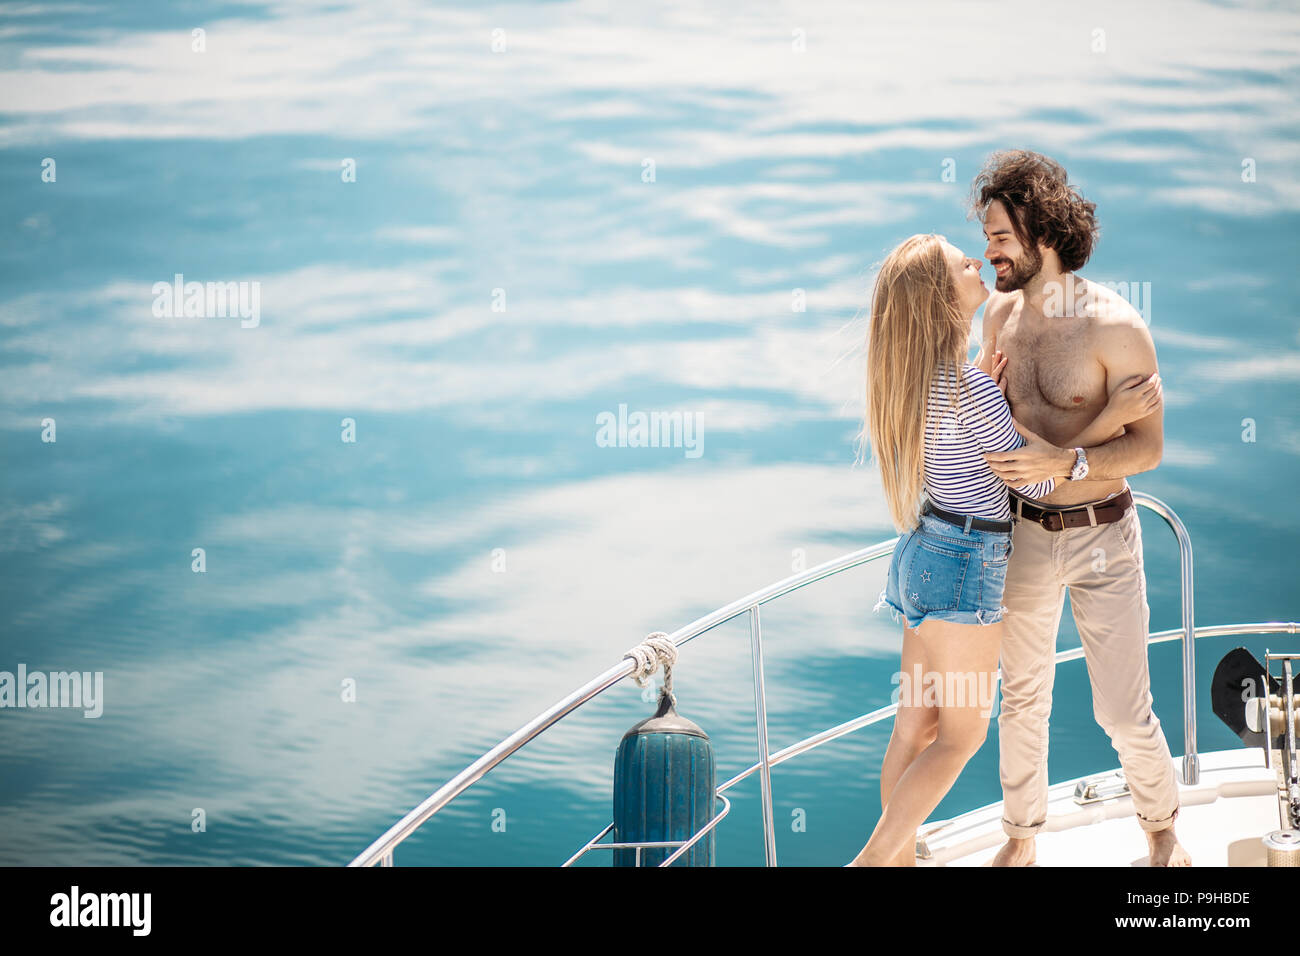 Passionate loving caucasian couple dancing on bow of sailboat, over blue sea background with copyspace. Summer vacation, People Relations and Love, Ro Stock Photo